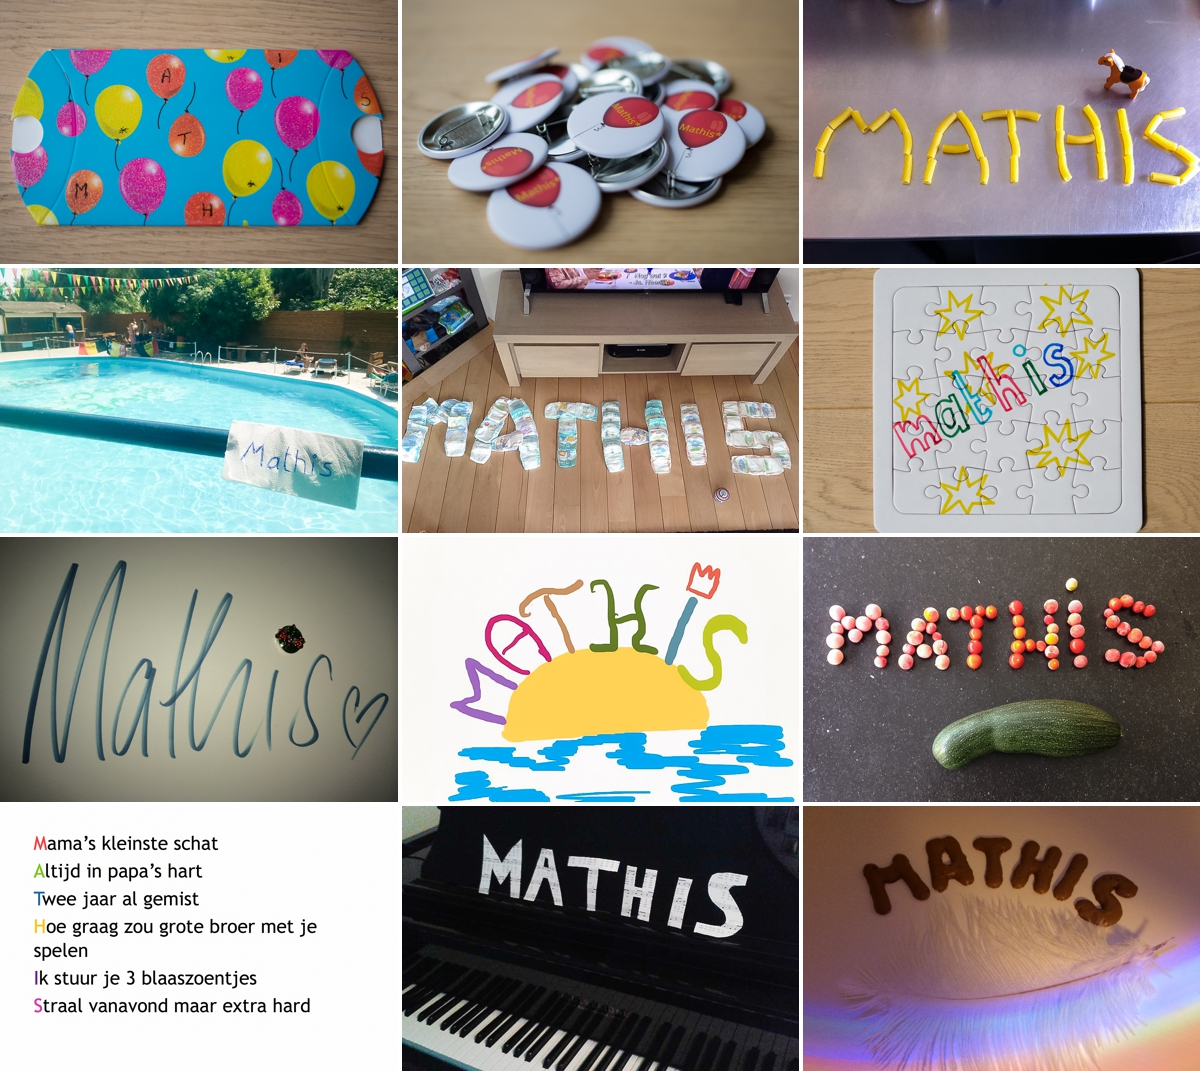 2015 Naamcollage Mathis 5